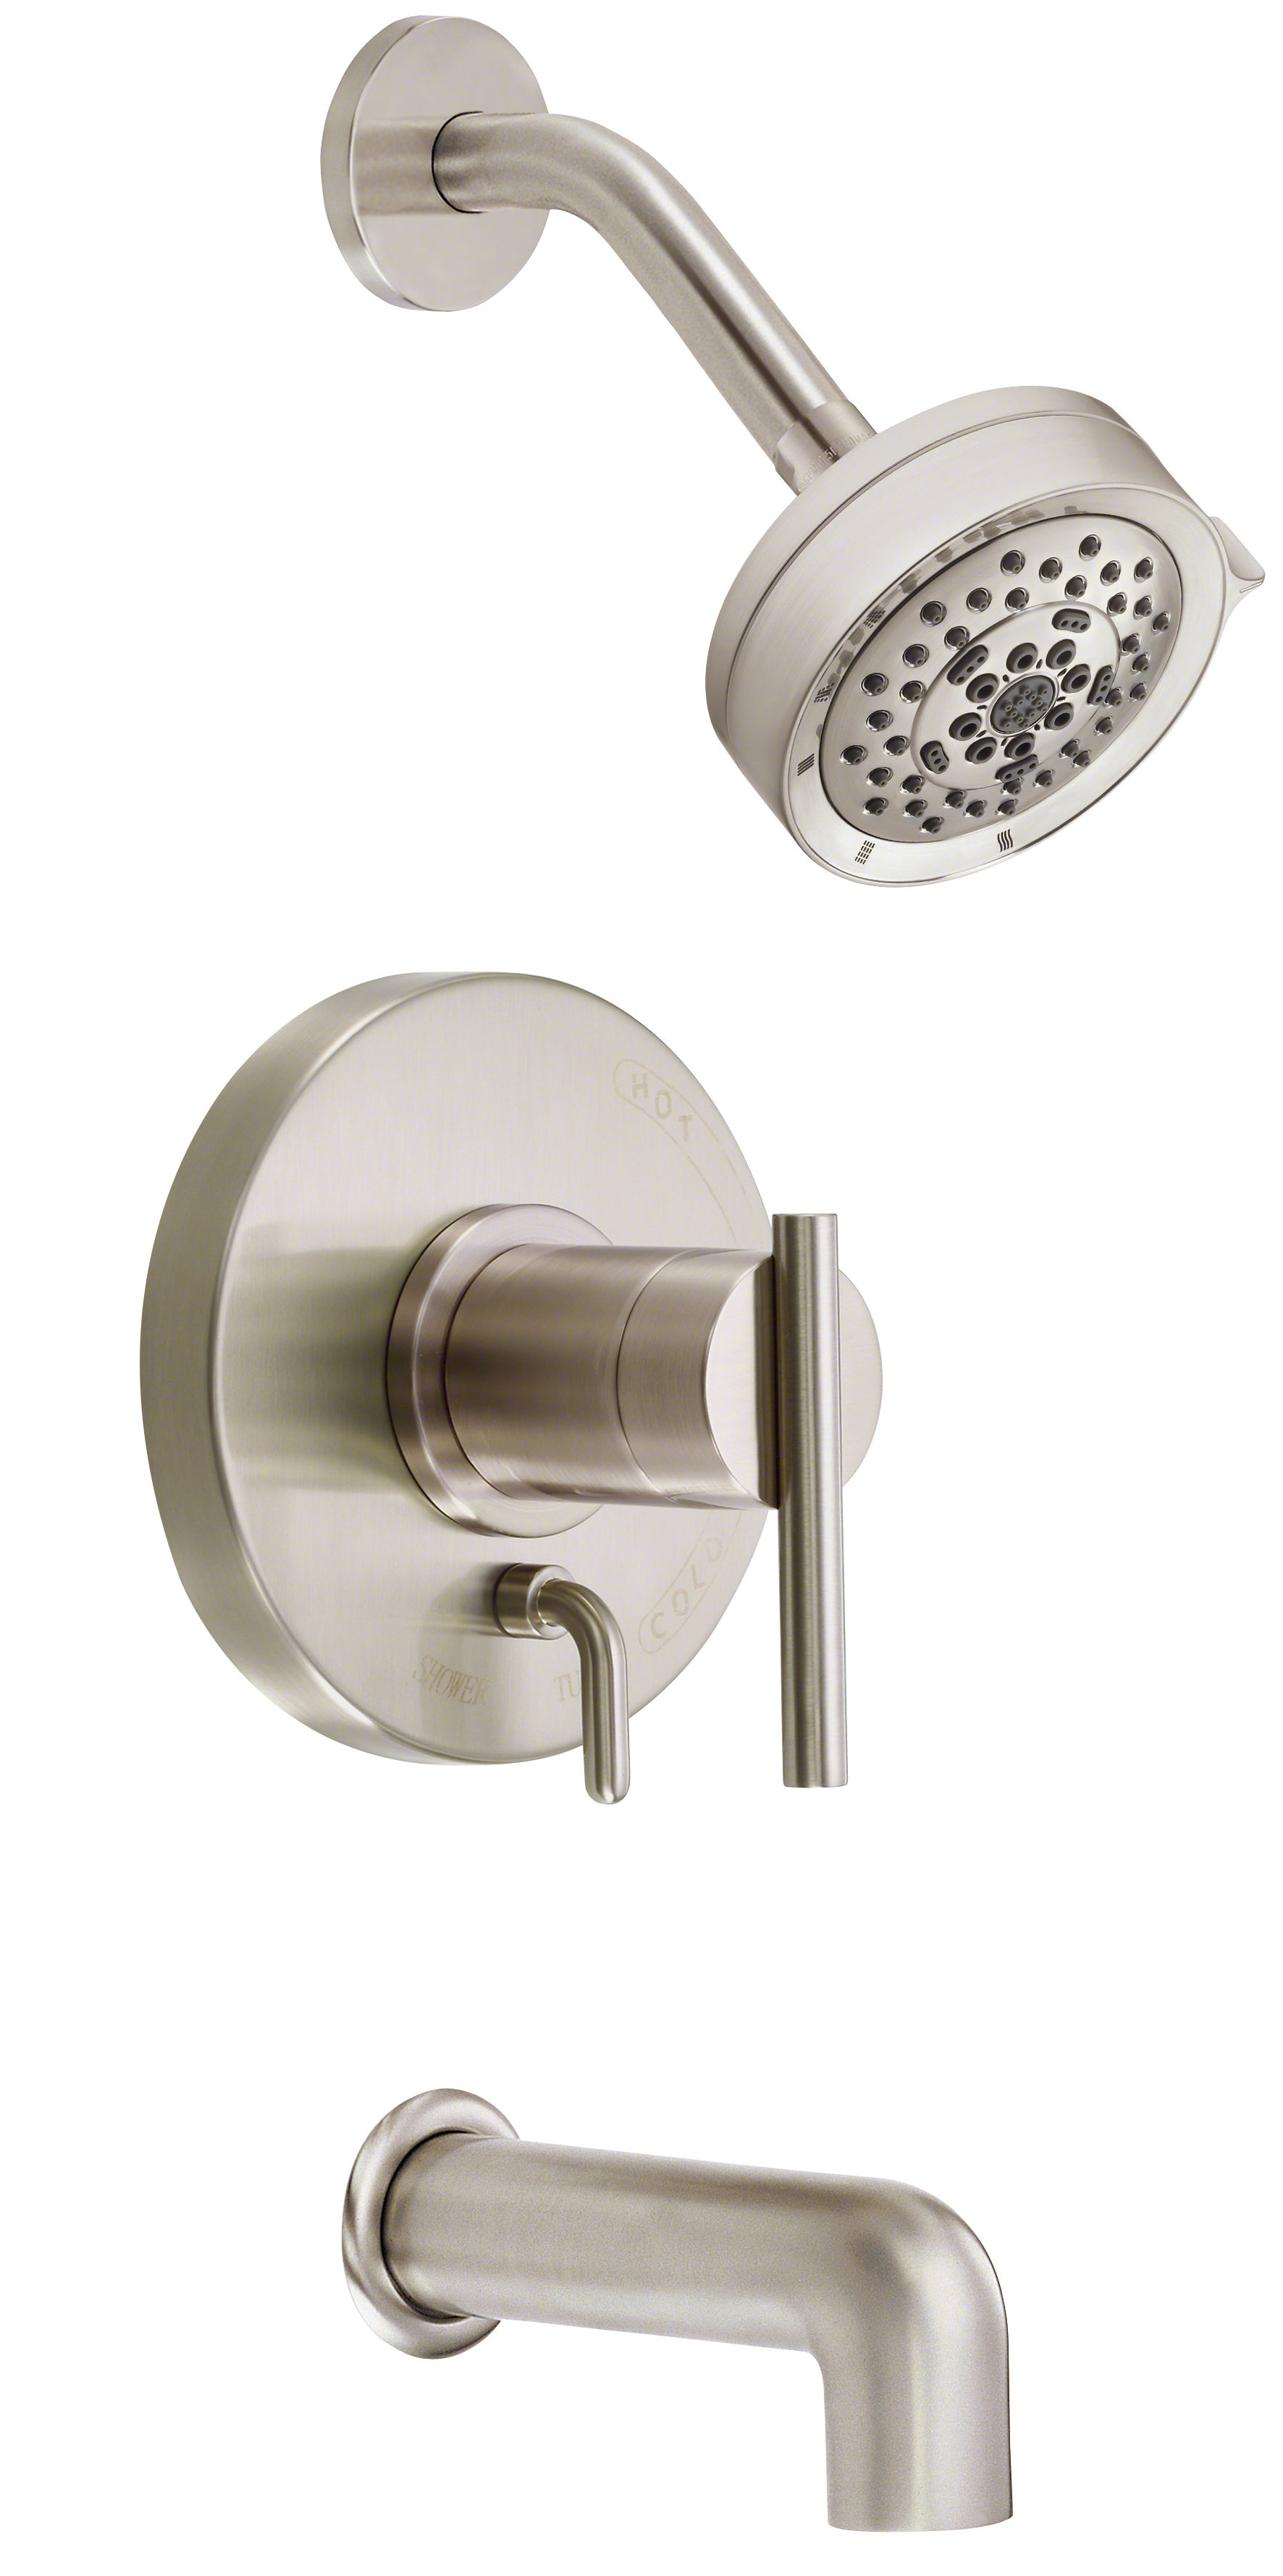 Danze Bathroom Accessories Danze D510058t Chrome Pressure Balanced Tub And Shower Trim